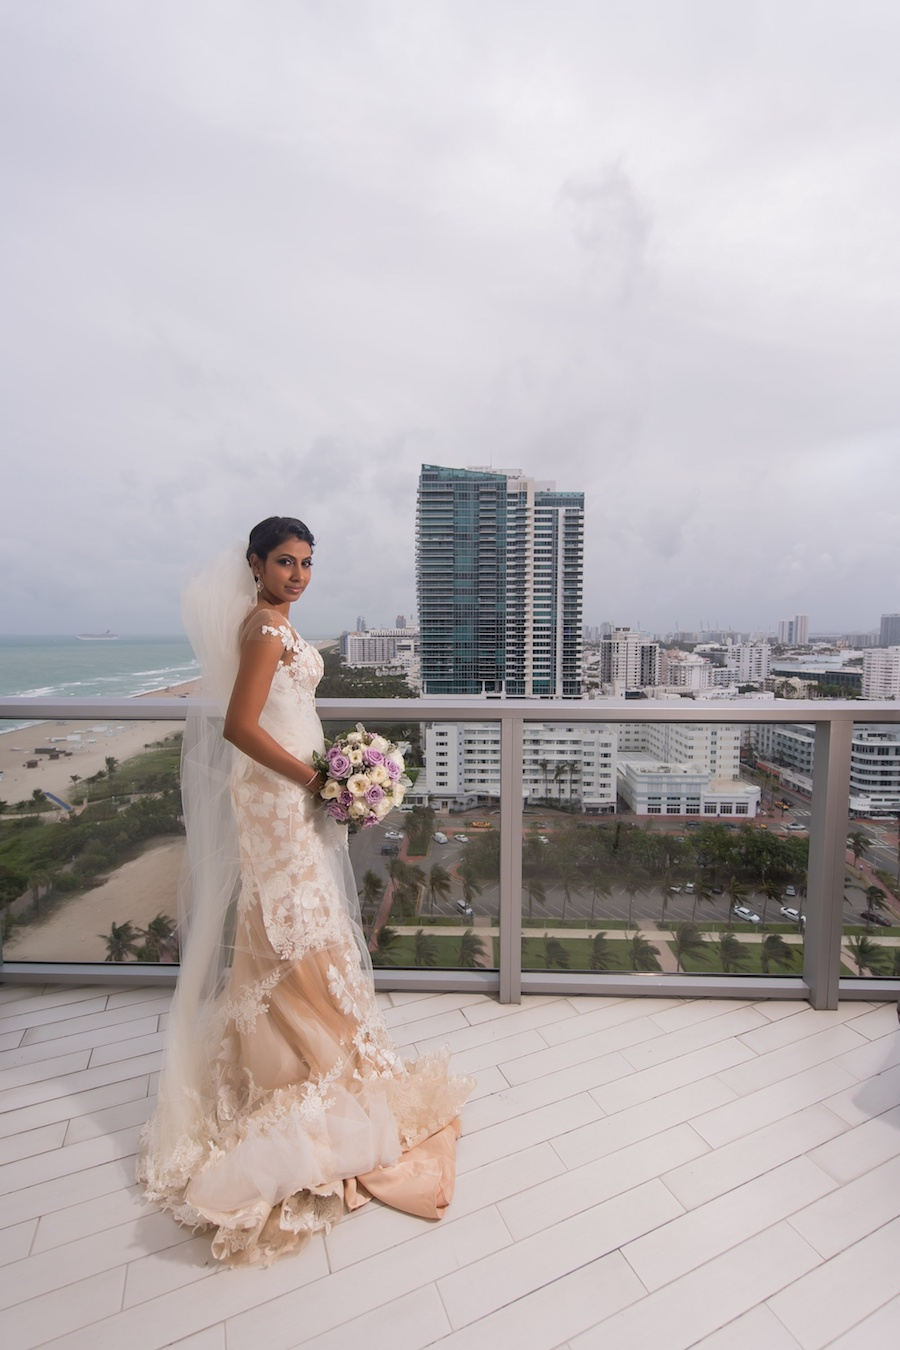 W South Beach, Panache Style, The W Hotel South Beach, Focused on Forever Photography, Wedidng venue, Wedding Decor, Wedding Flowers